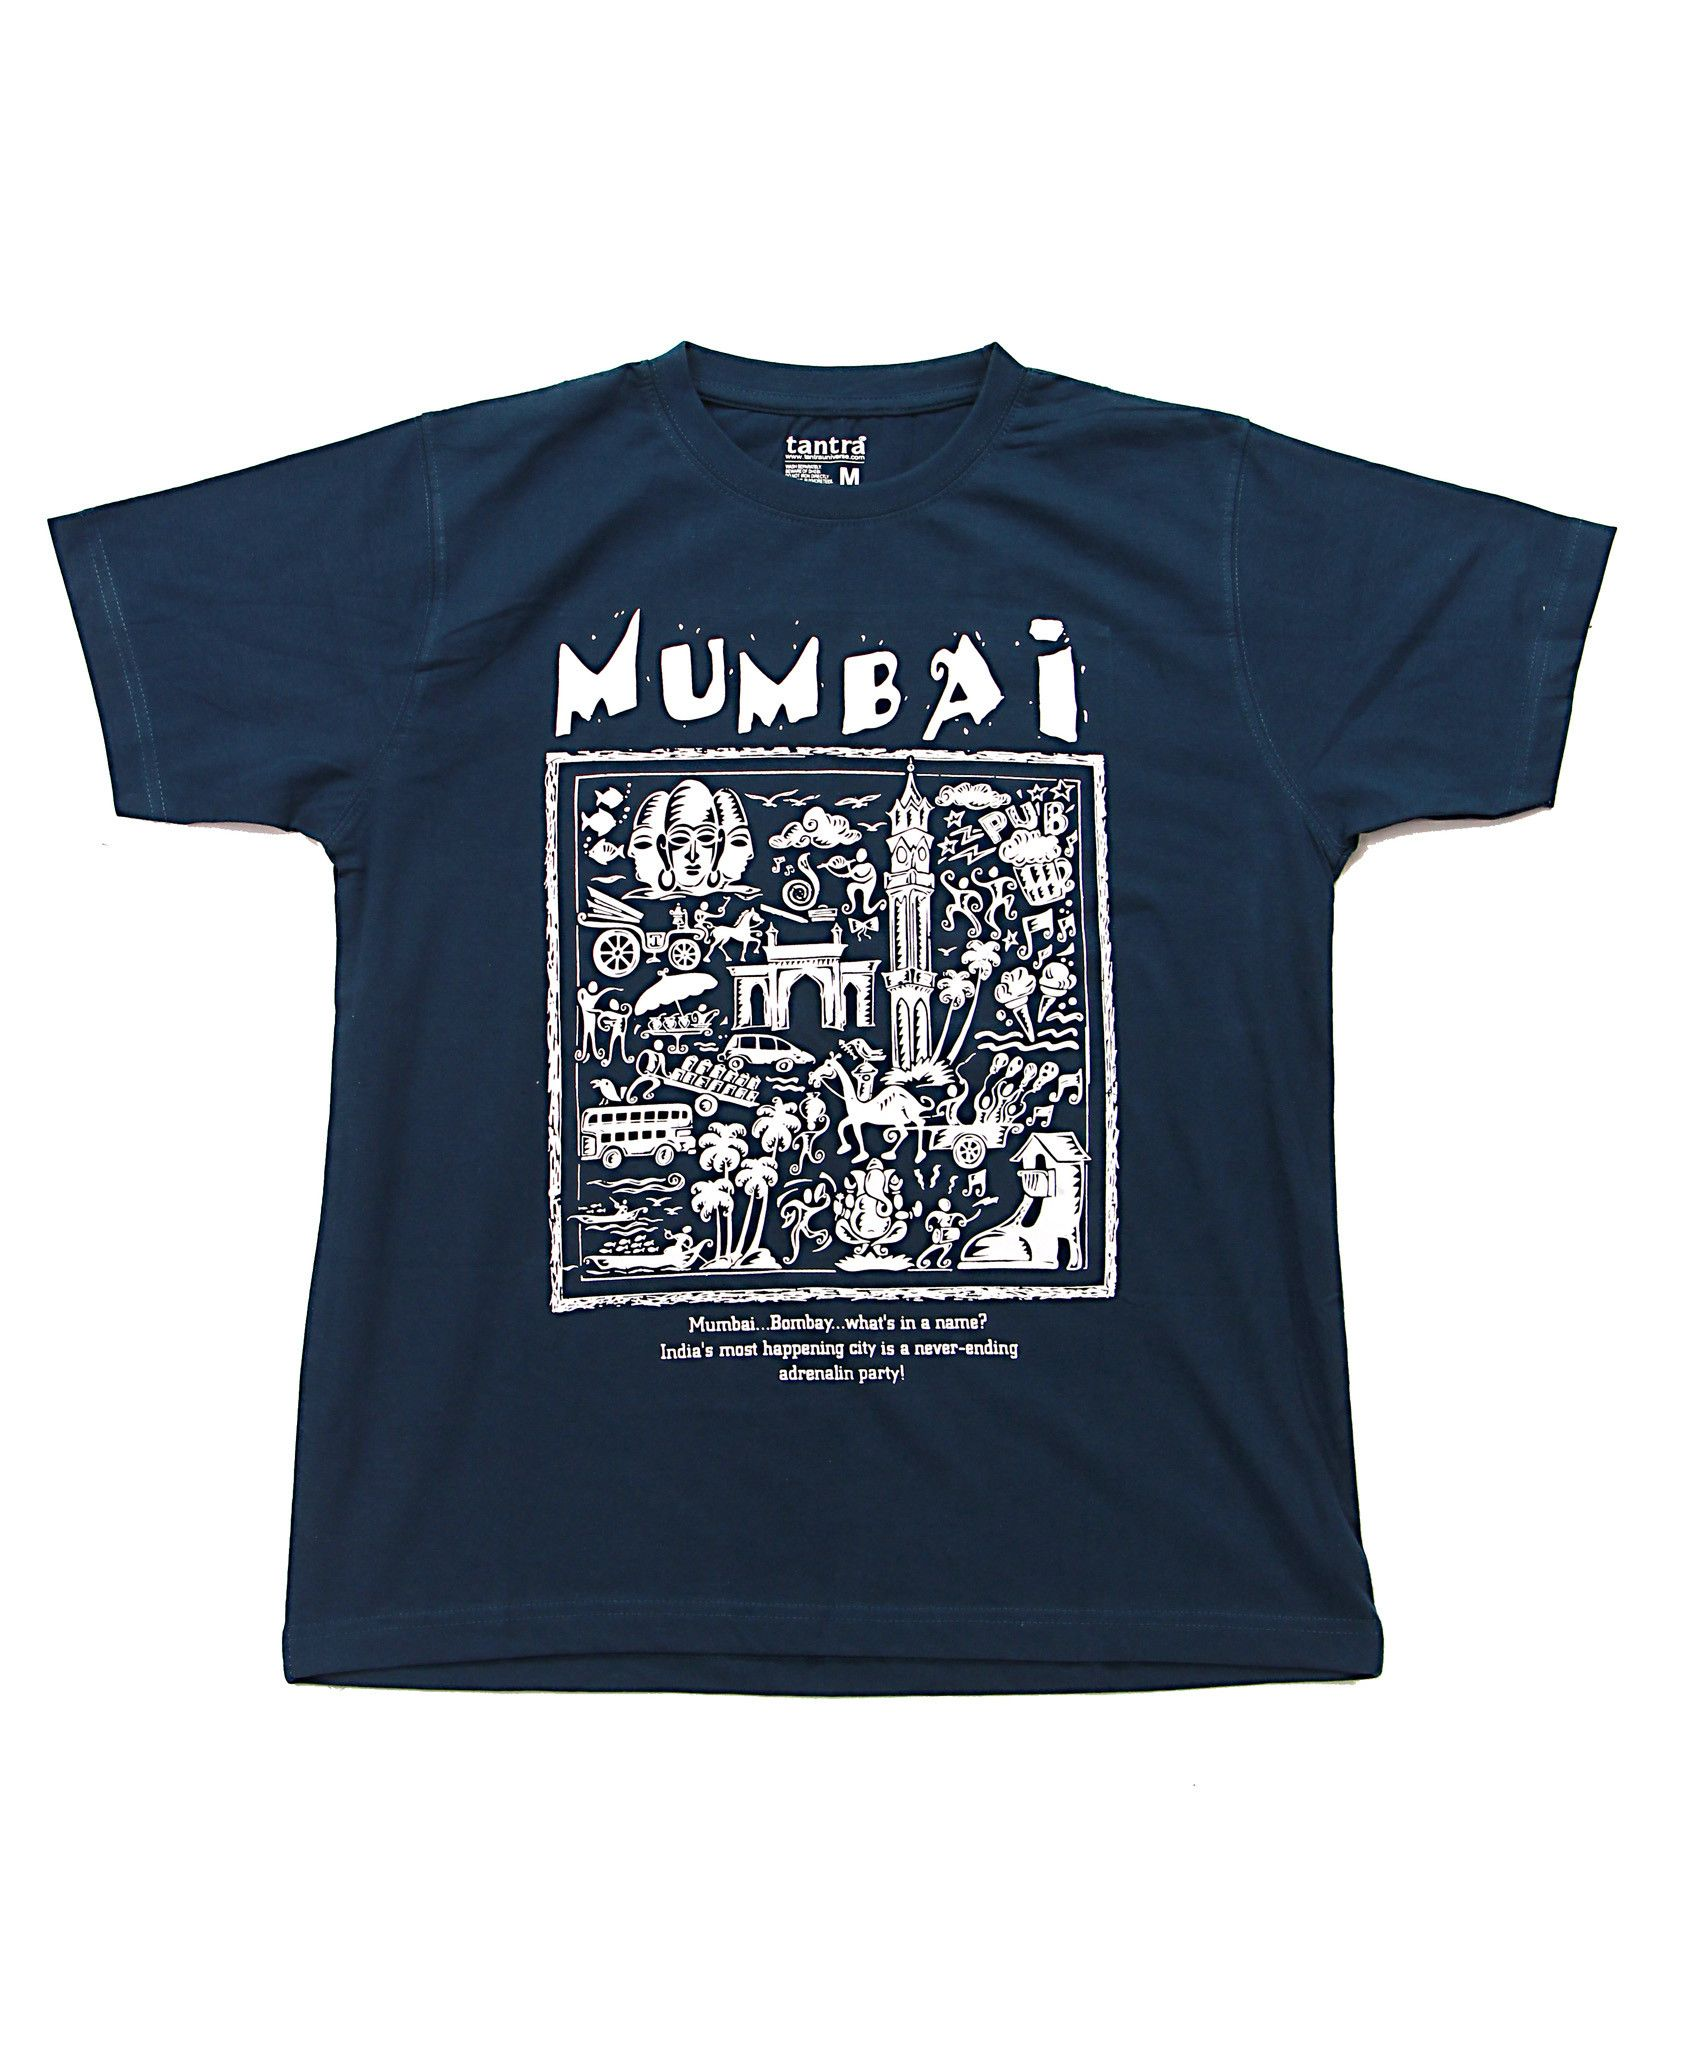 Cool tshirt designs for men the image for Funky t shirts online